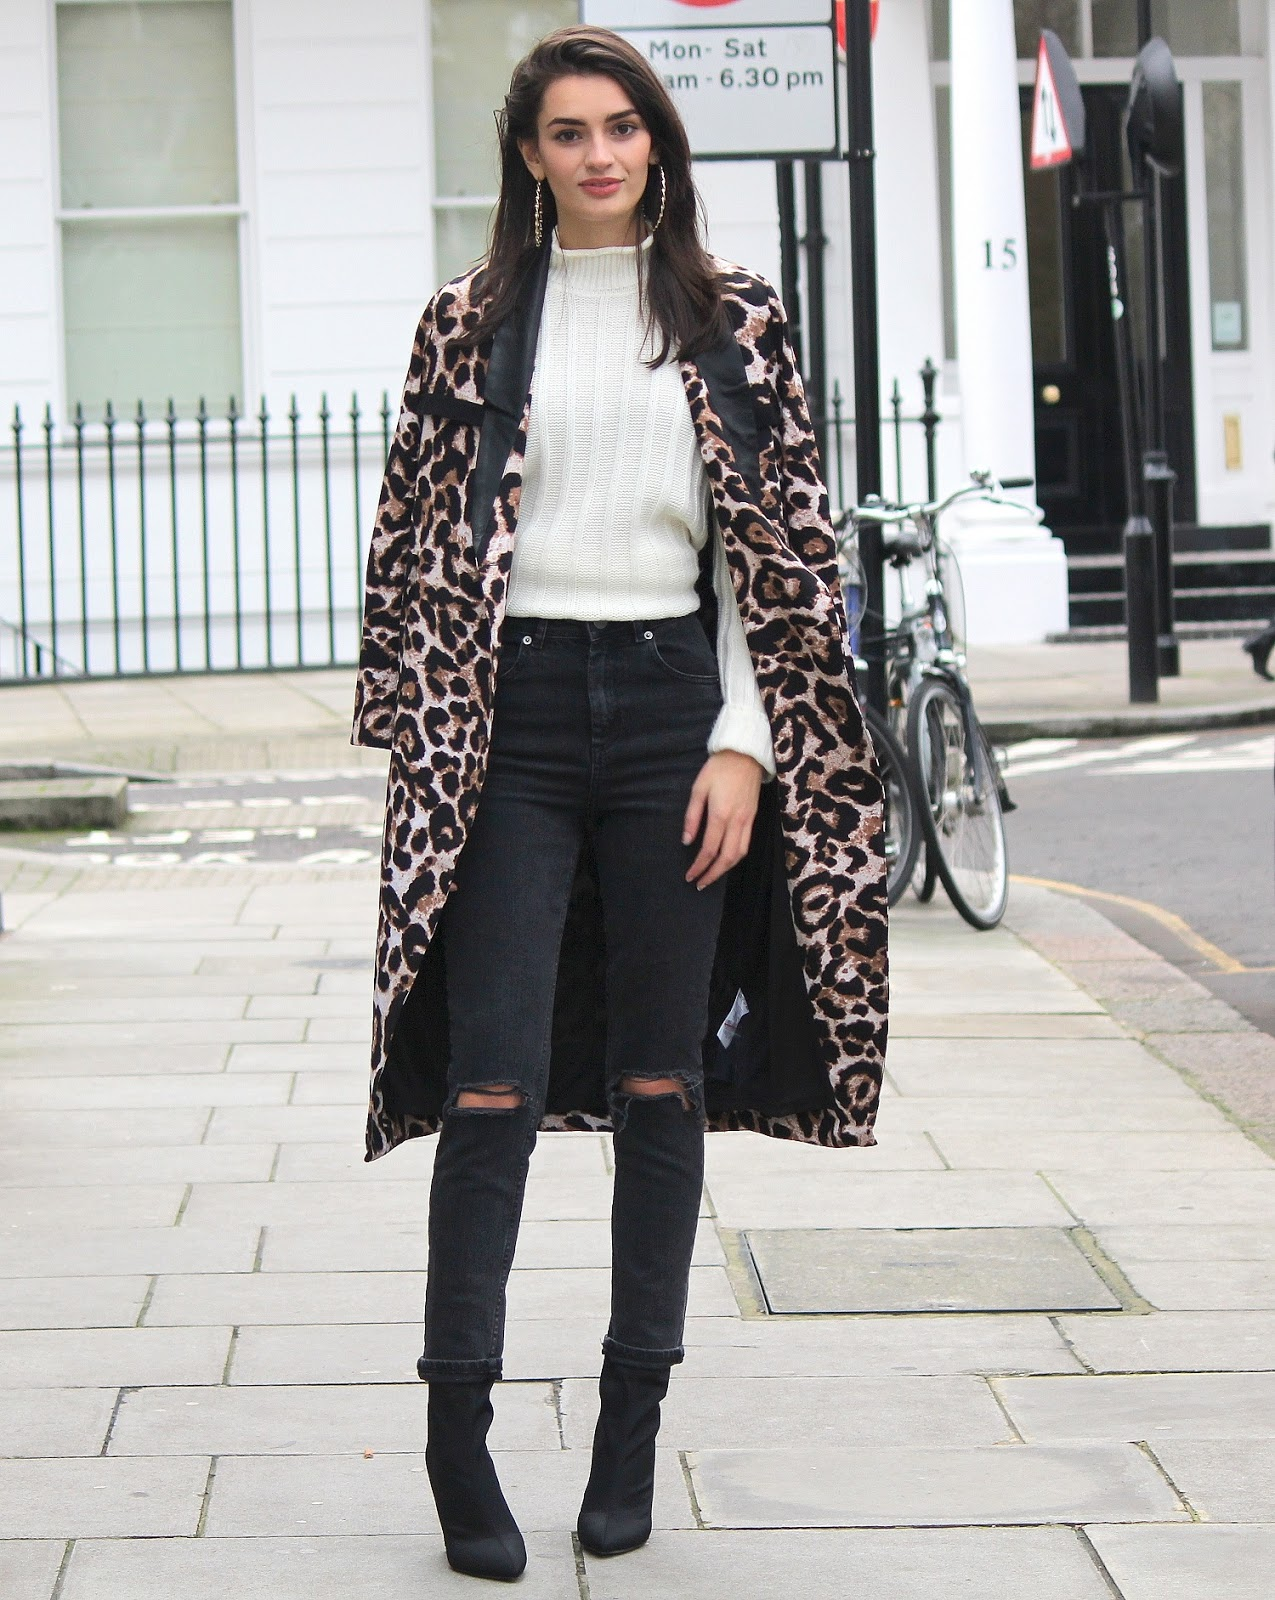 peexo fashion blogger wearing winter outfit including leopard print coat